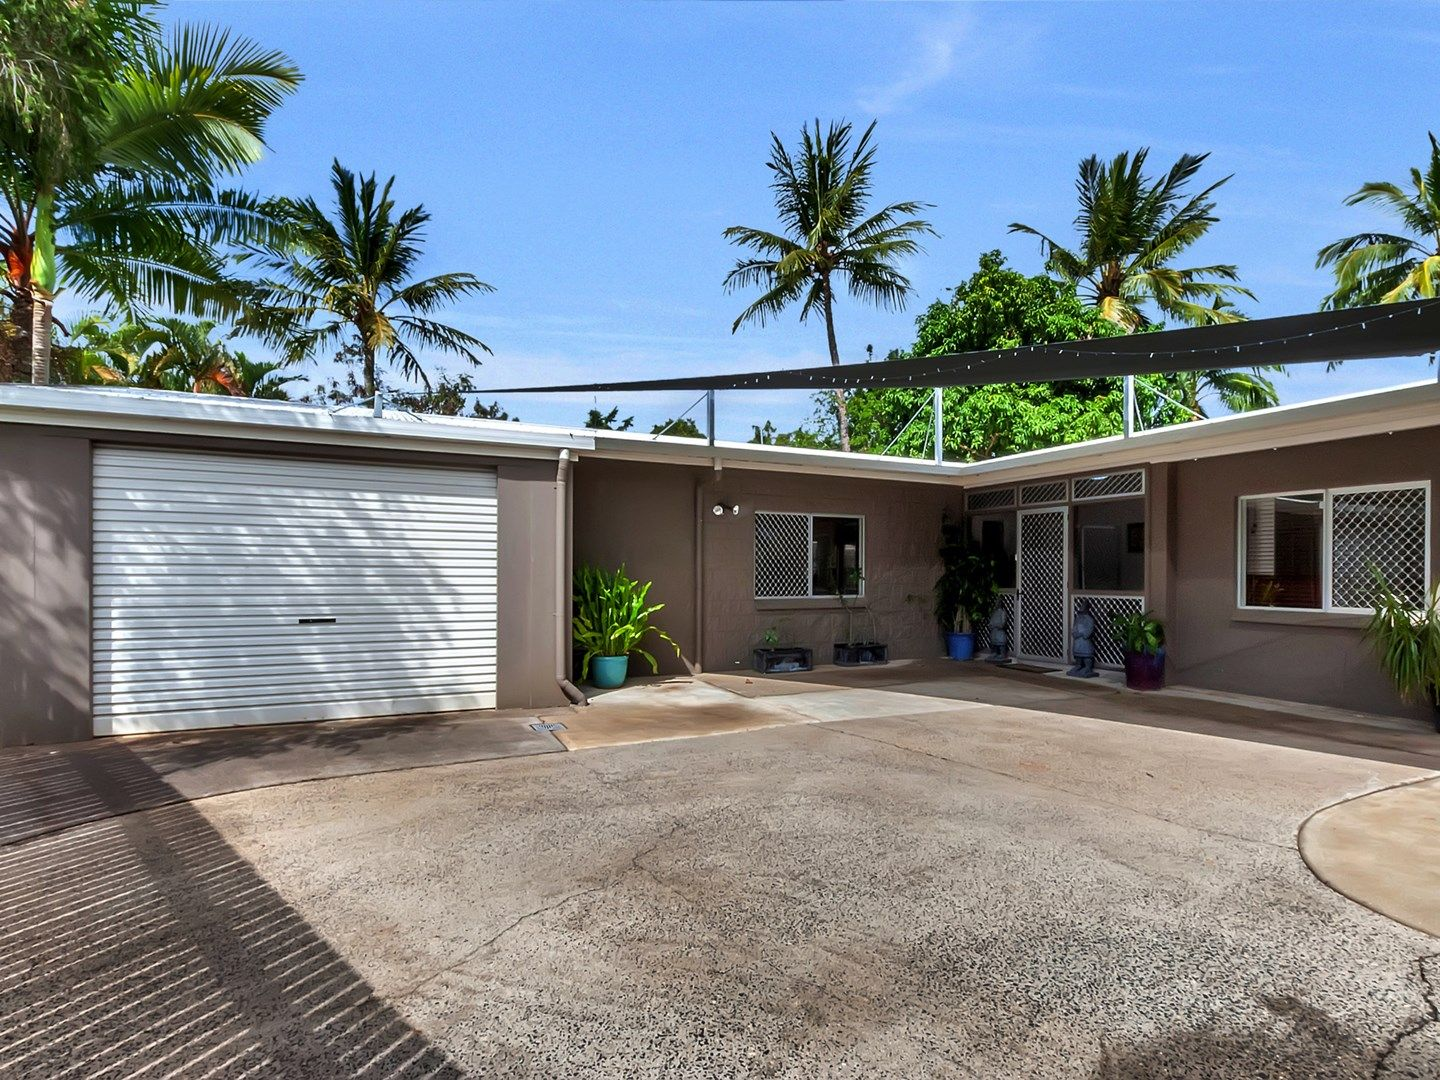 19A Boden St, Edge Hill QLD 4870, Image 2